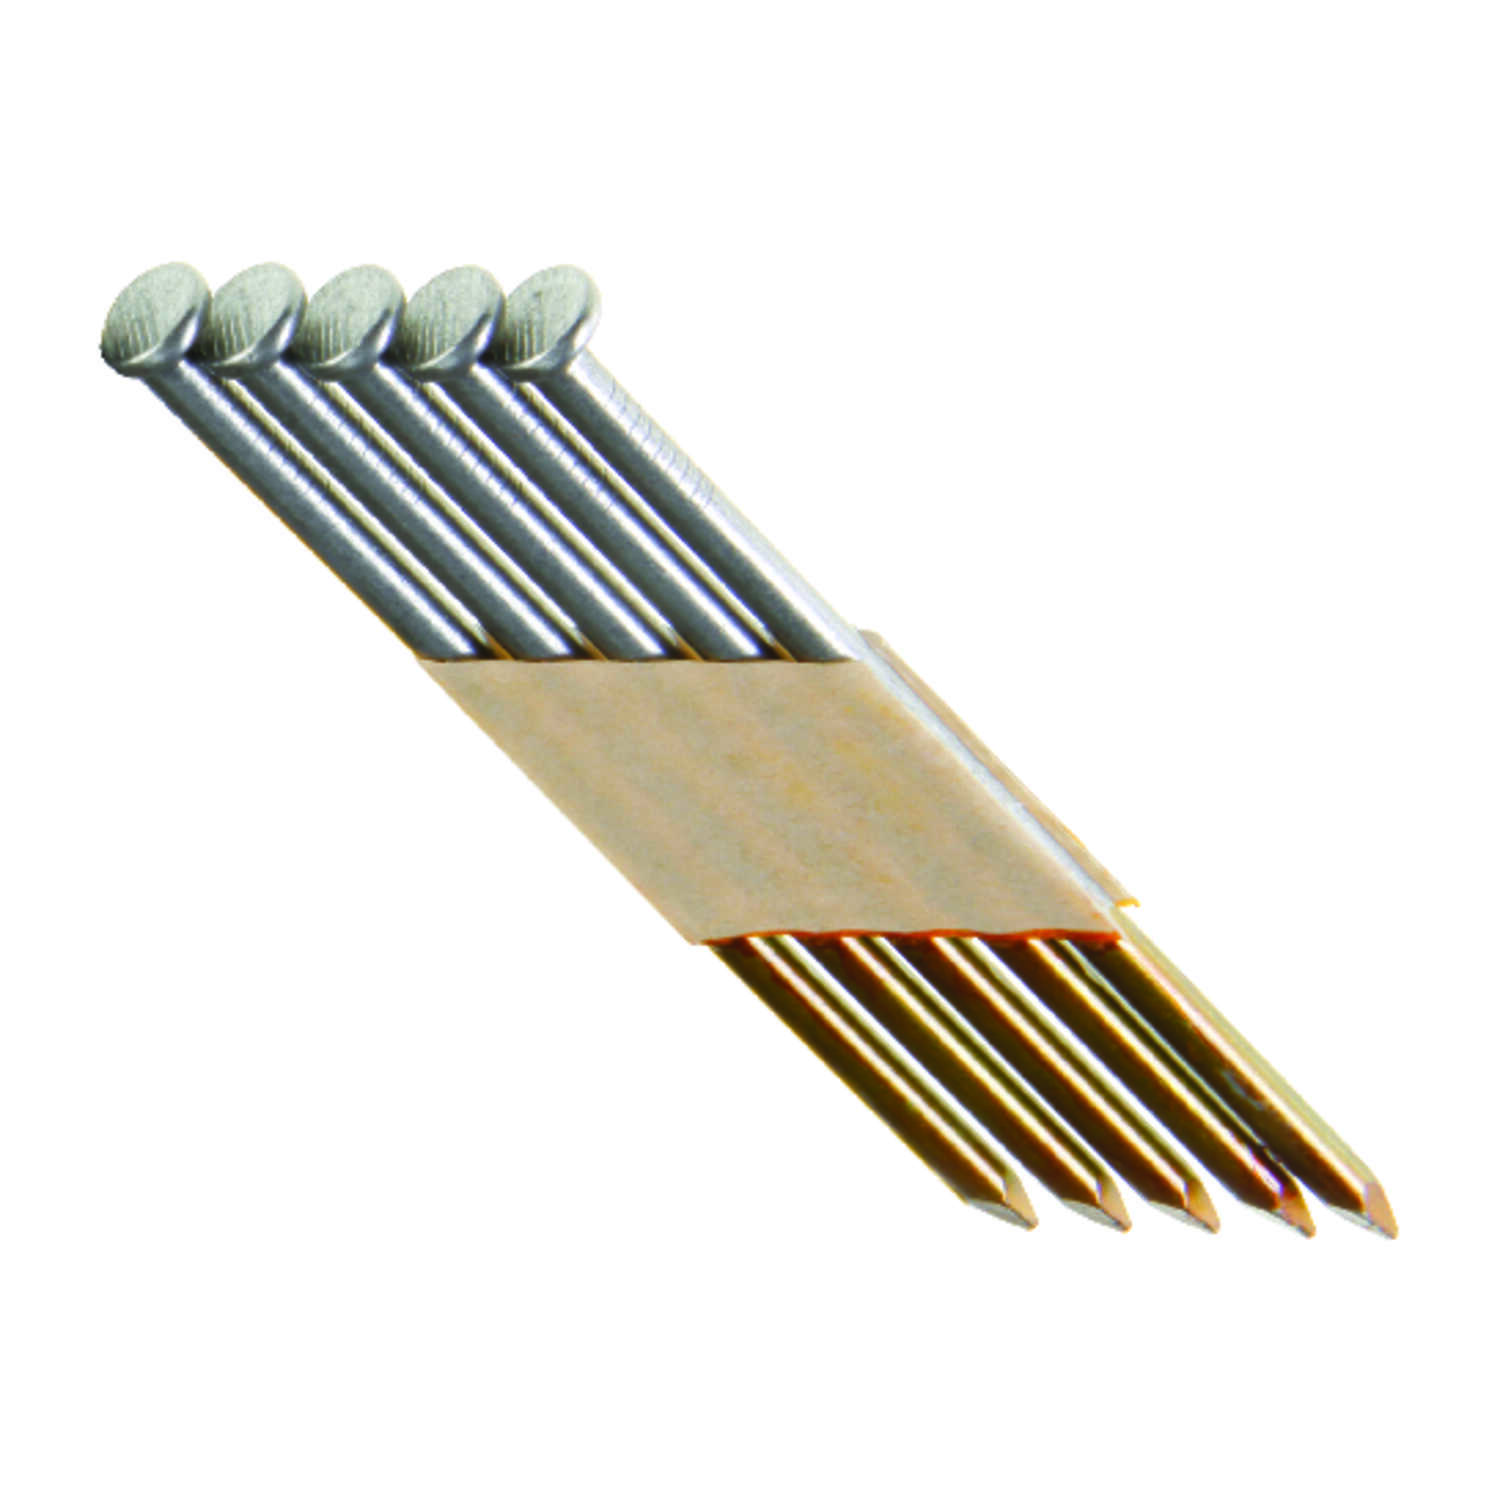 Grip-Rite  30 deg. 10 Ga. Smooth Shank  Angled Strip  Framing Nails  3-1/4 in. L x 0.13 in. Dia. 1 p